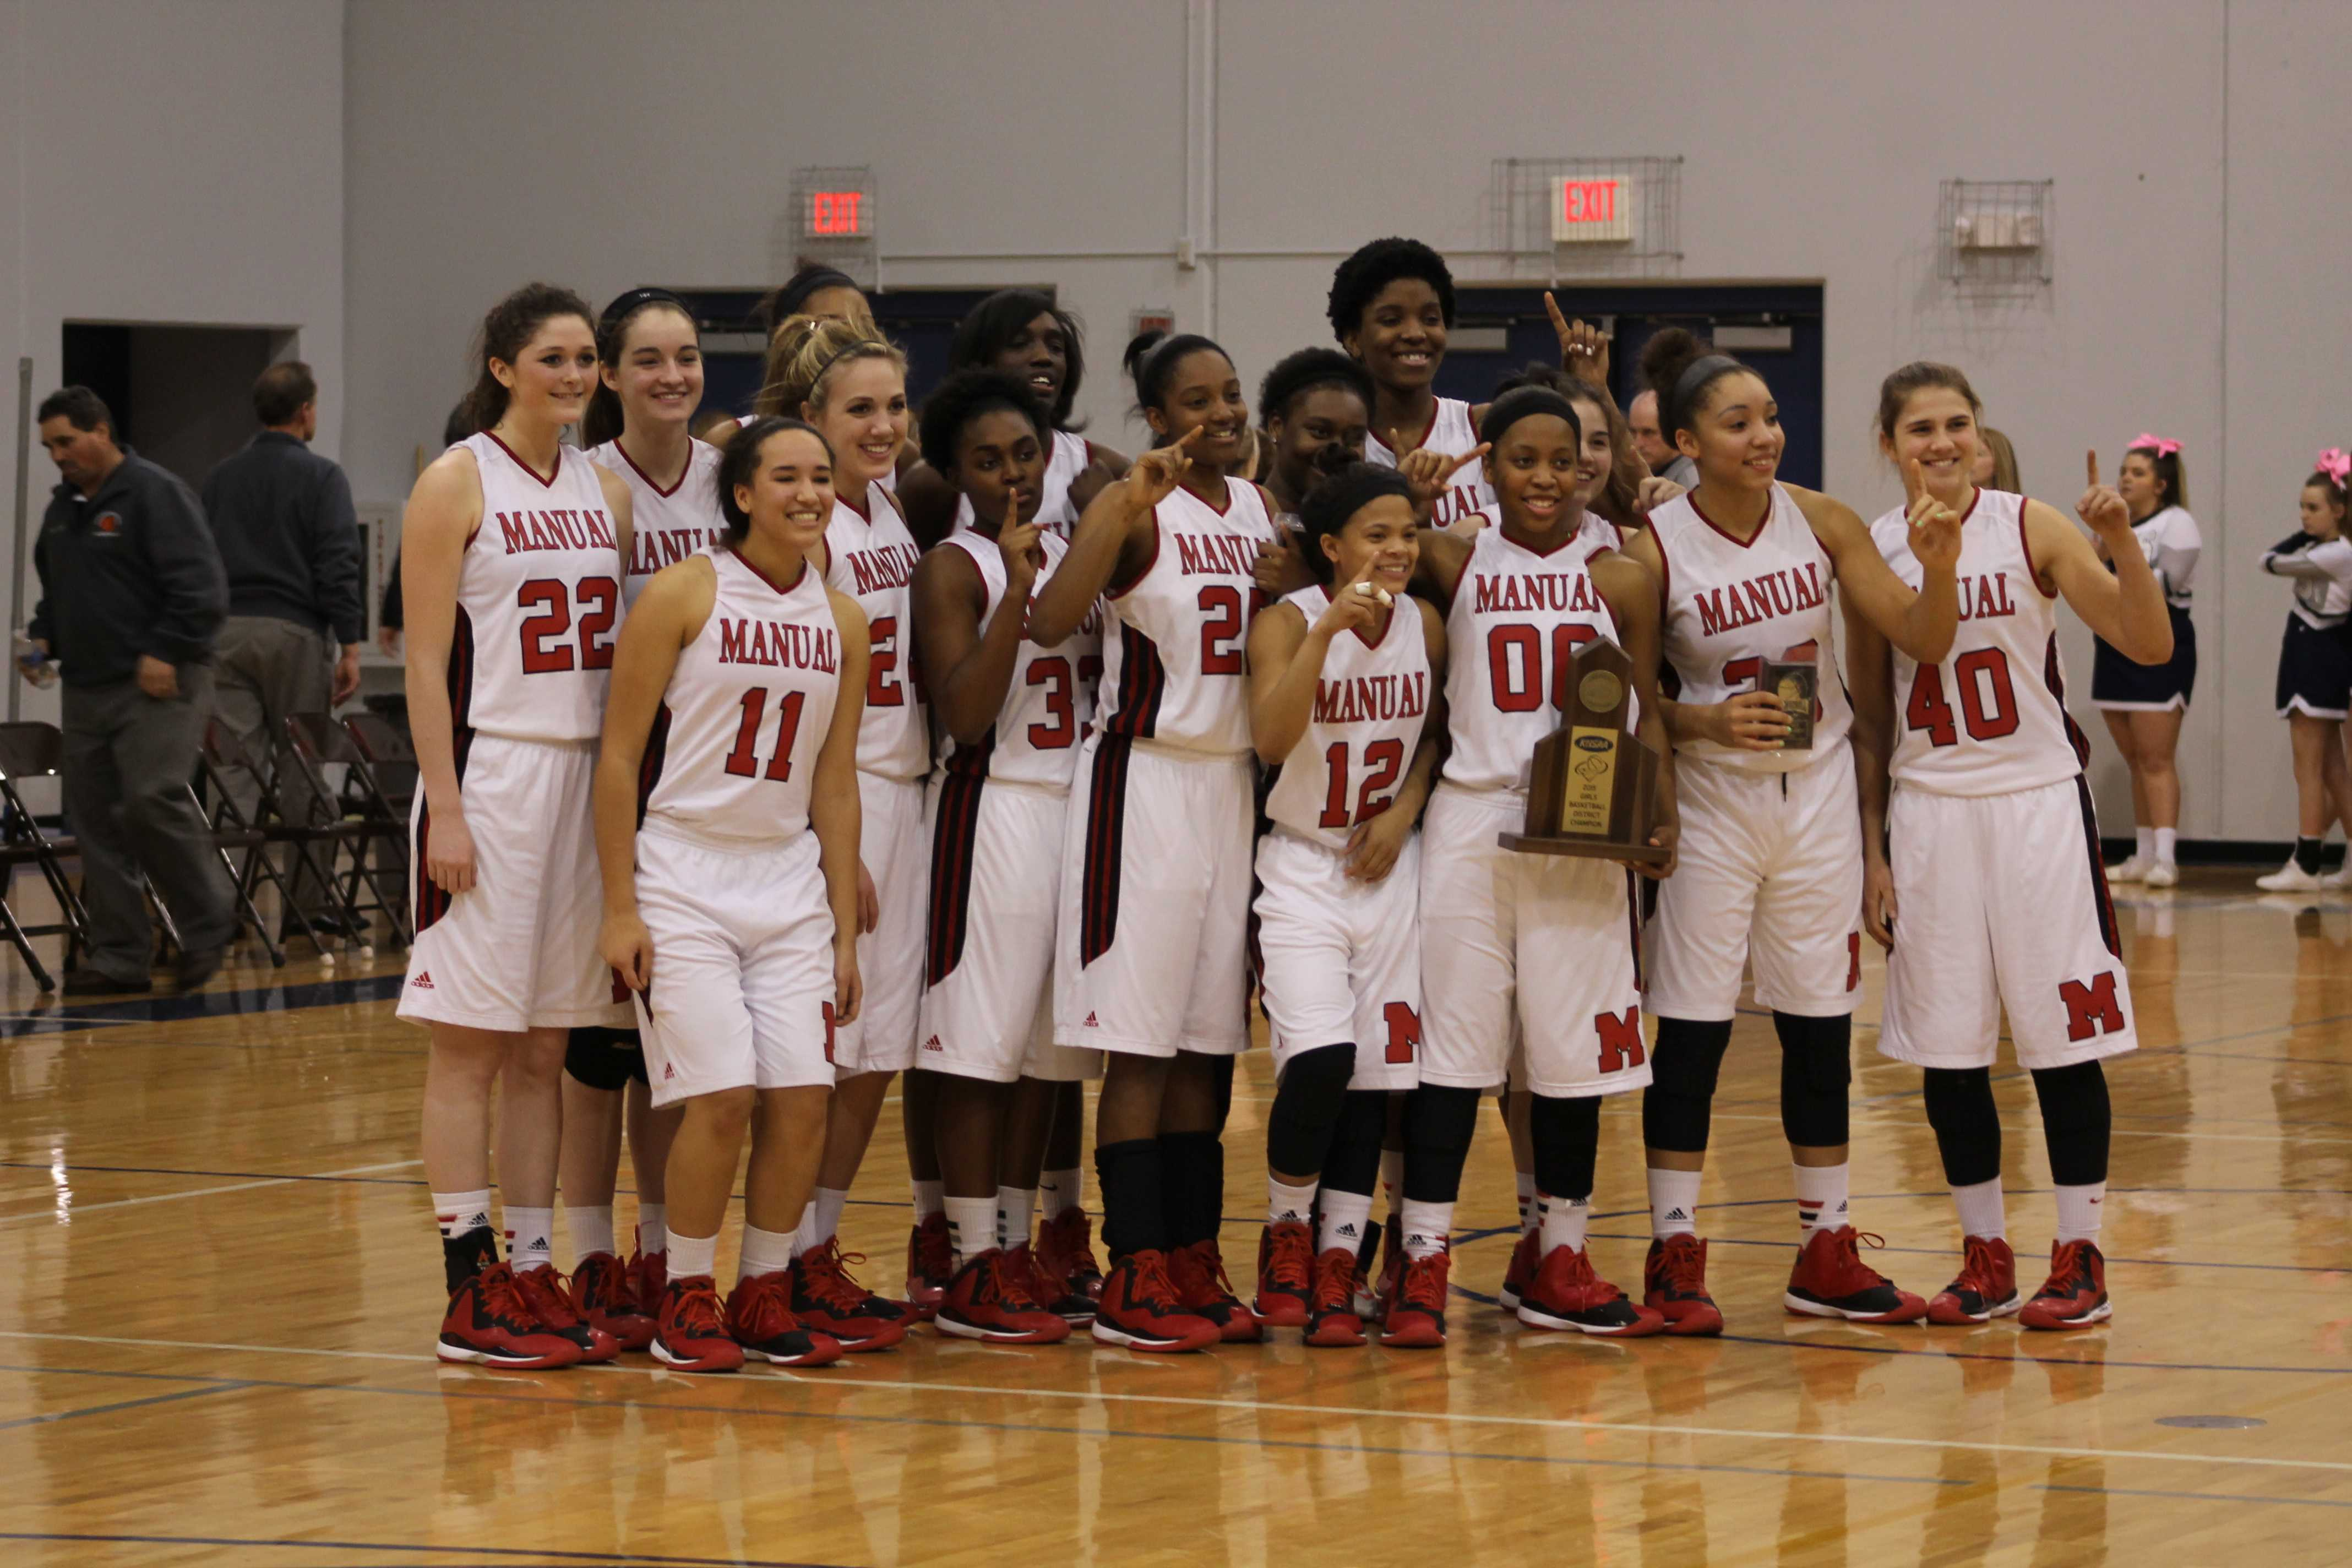 The Lady Crimsons pose with their trophy after winning the district tournament. Manual will now advance to the regional tournament.